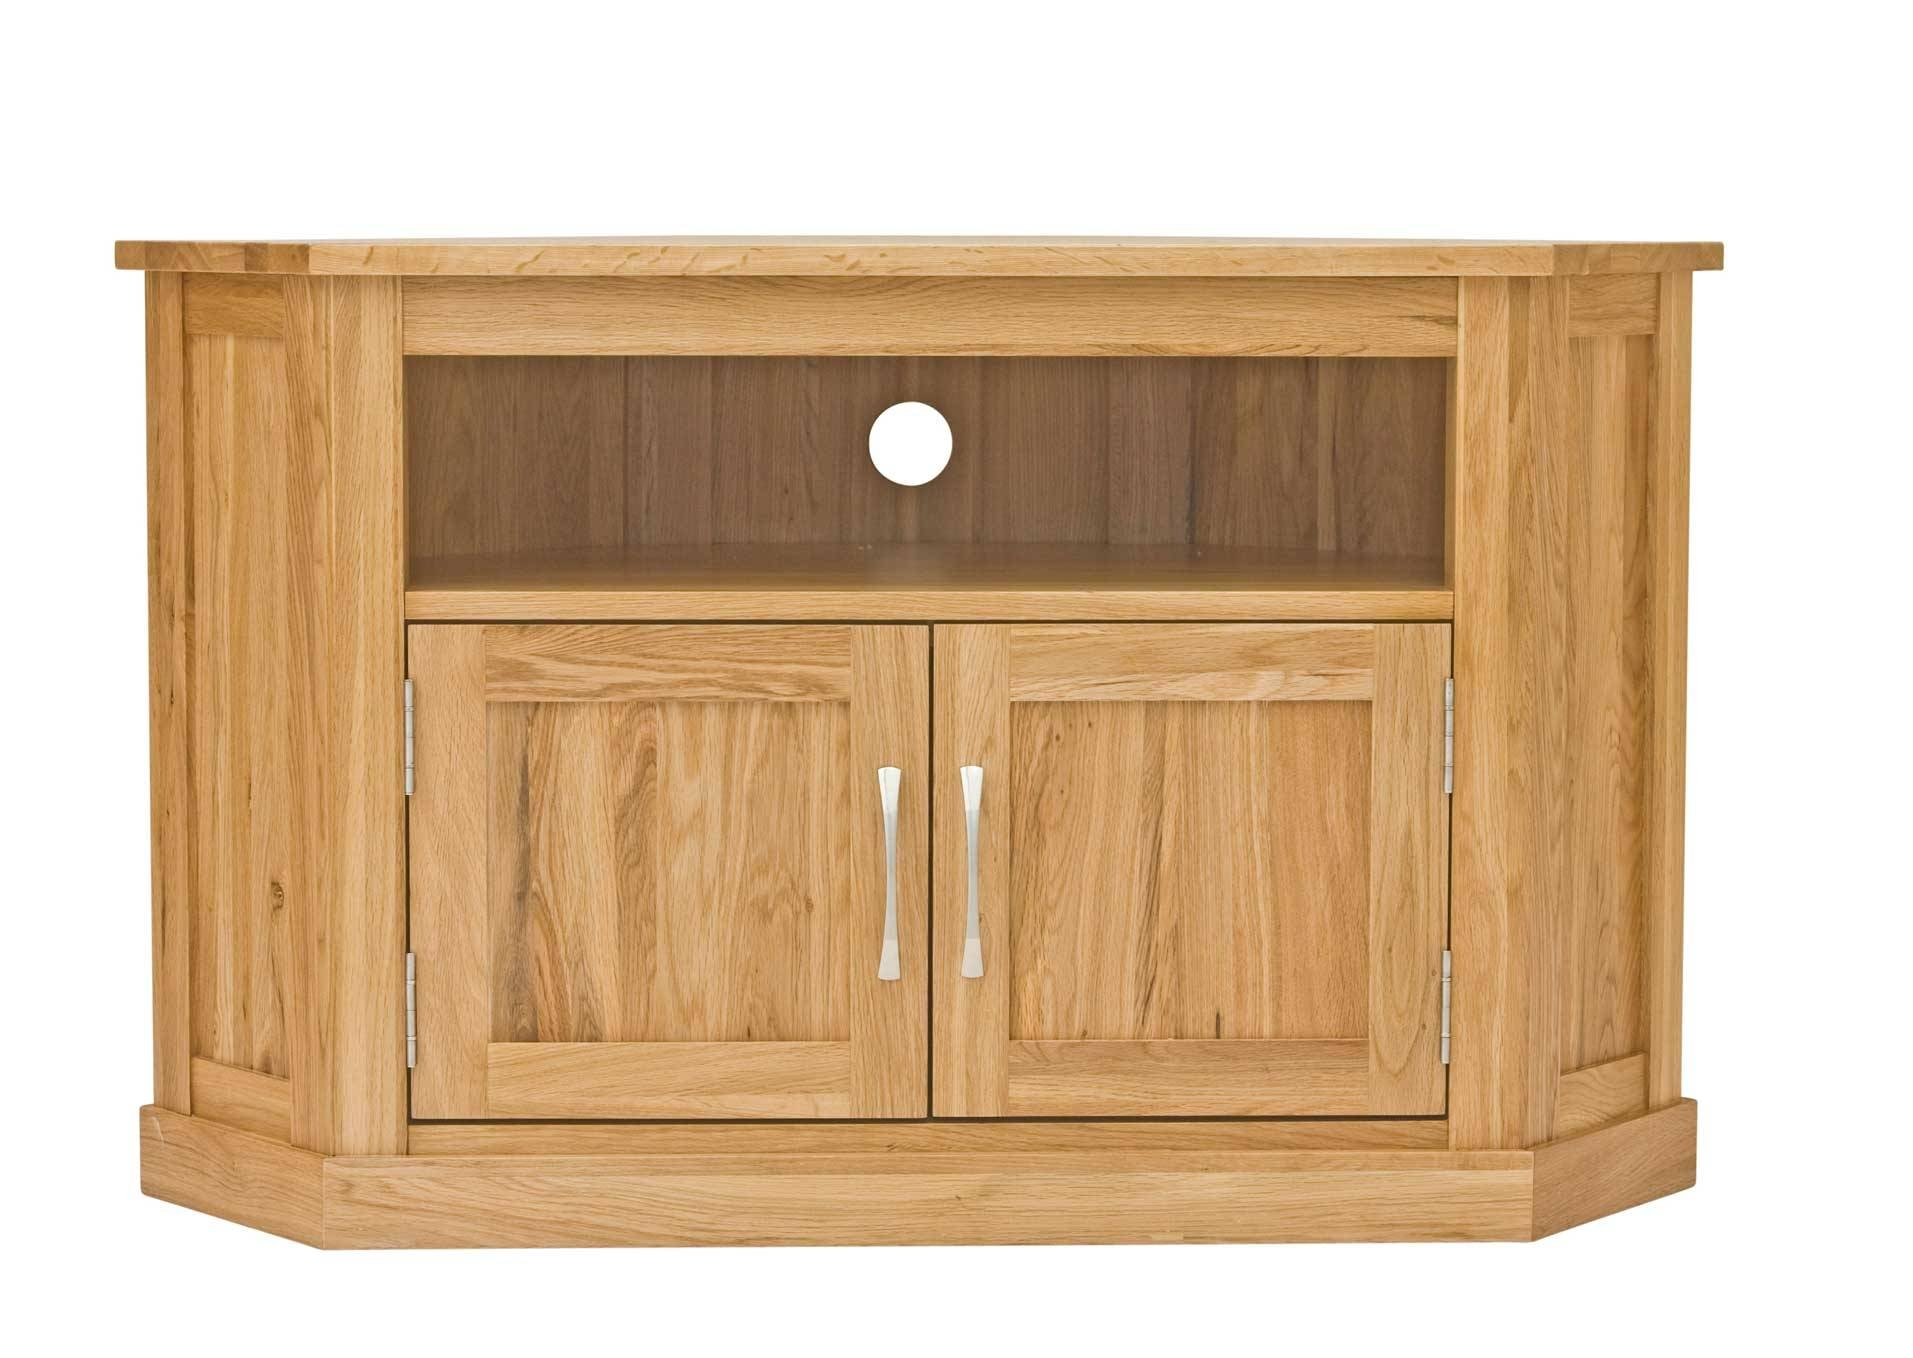 Classic Oak Corner Television Cabinet | Hampshire Furniture For Wood Corner Tv Cabinets (View 11 of 15)